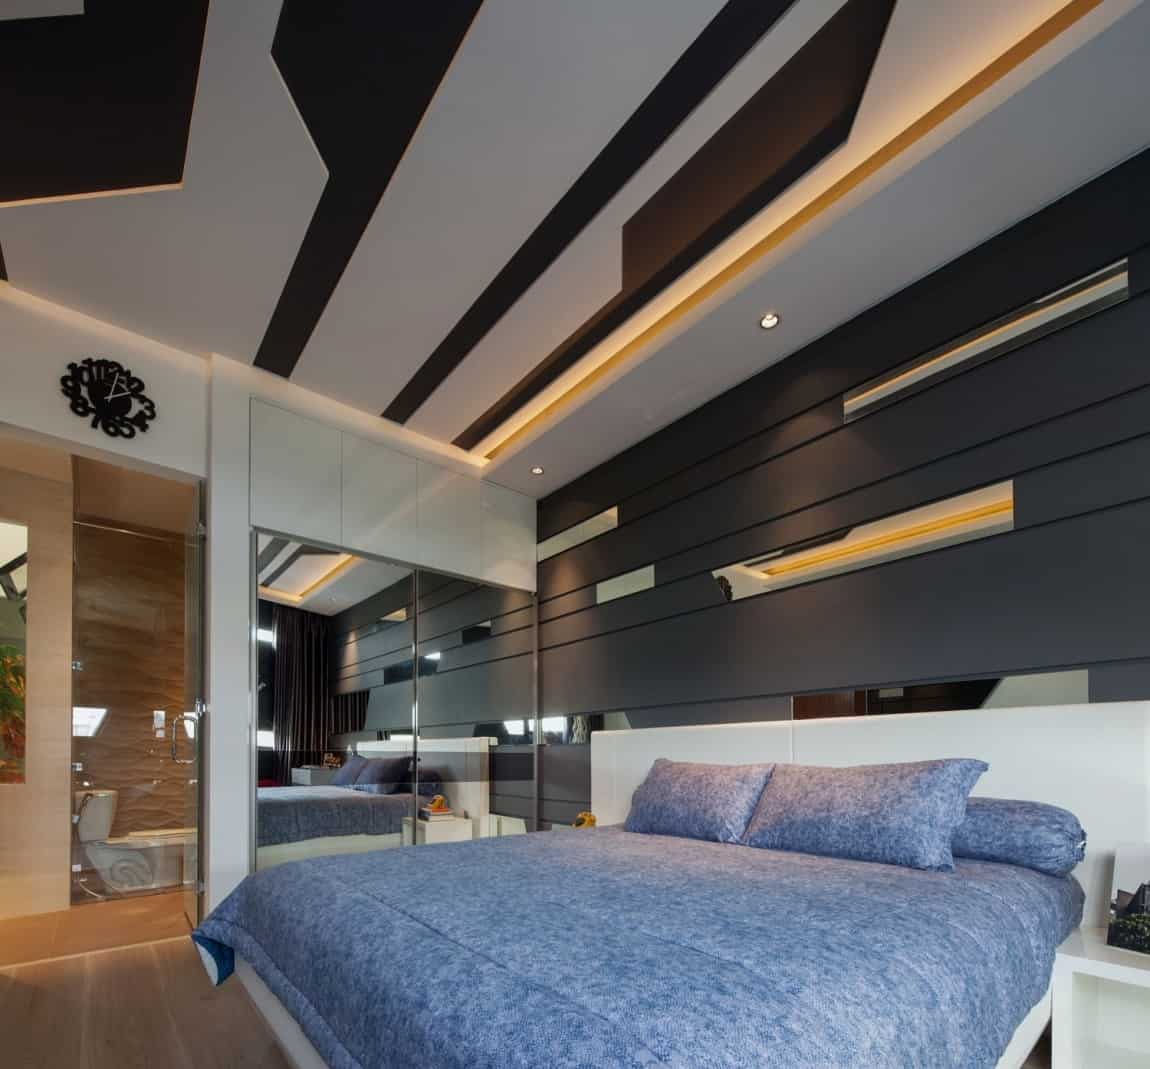 Fall Ceiling Wallpaper Design House With Creative Ceilings And Glass Floors